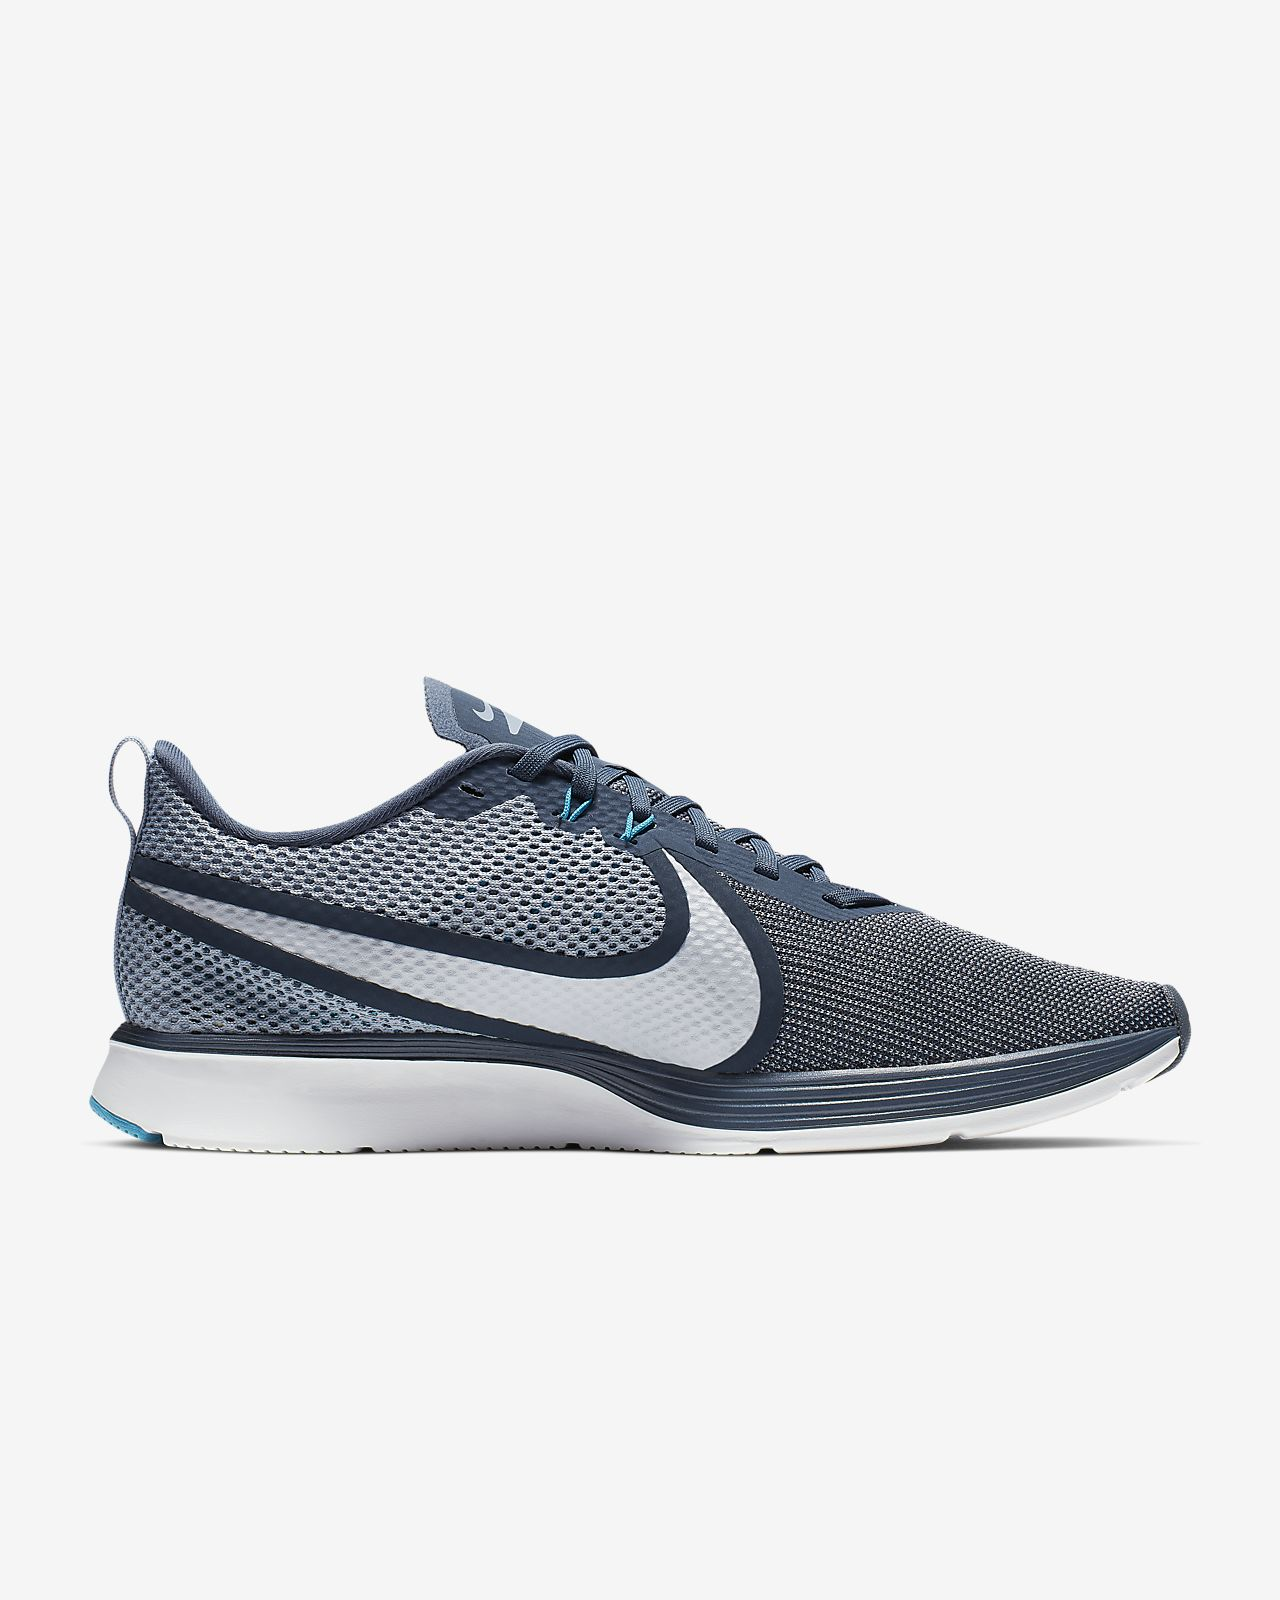 wholesale outlet pre order reliable quality Nike Zoom Strike 2 Men's Running Shoe